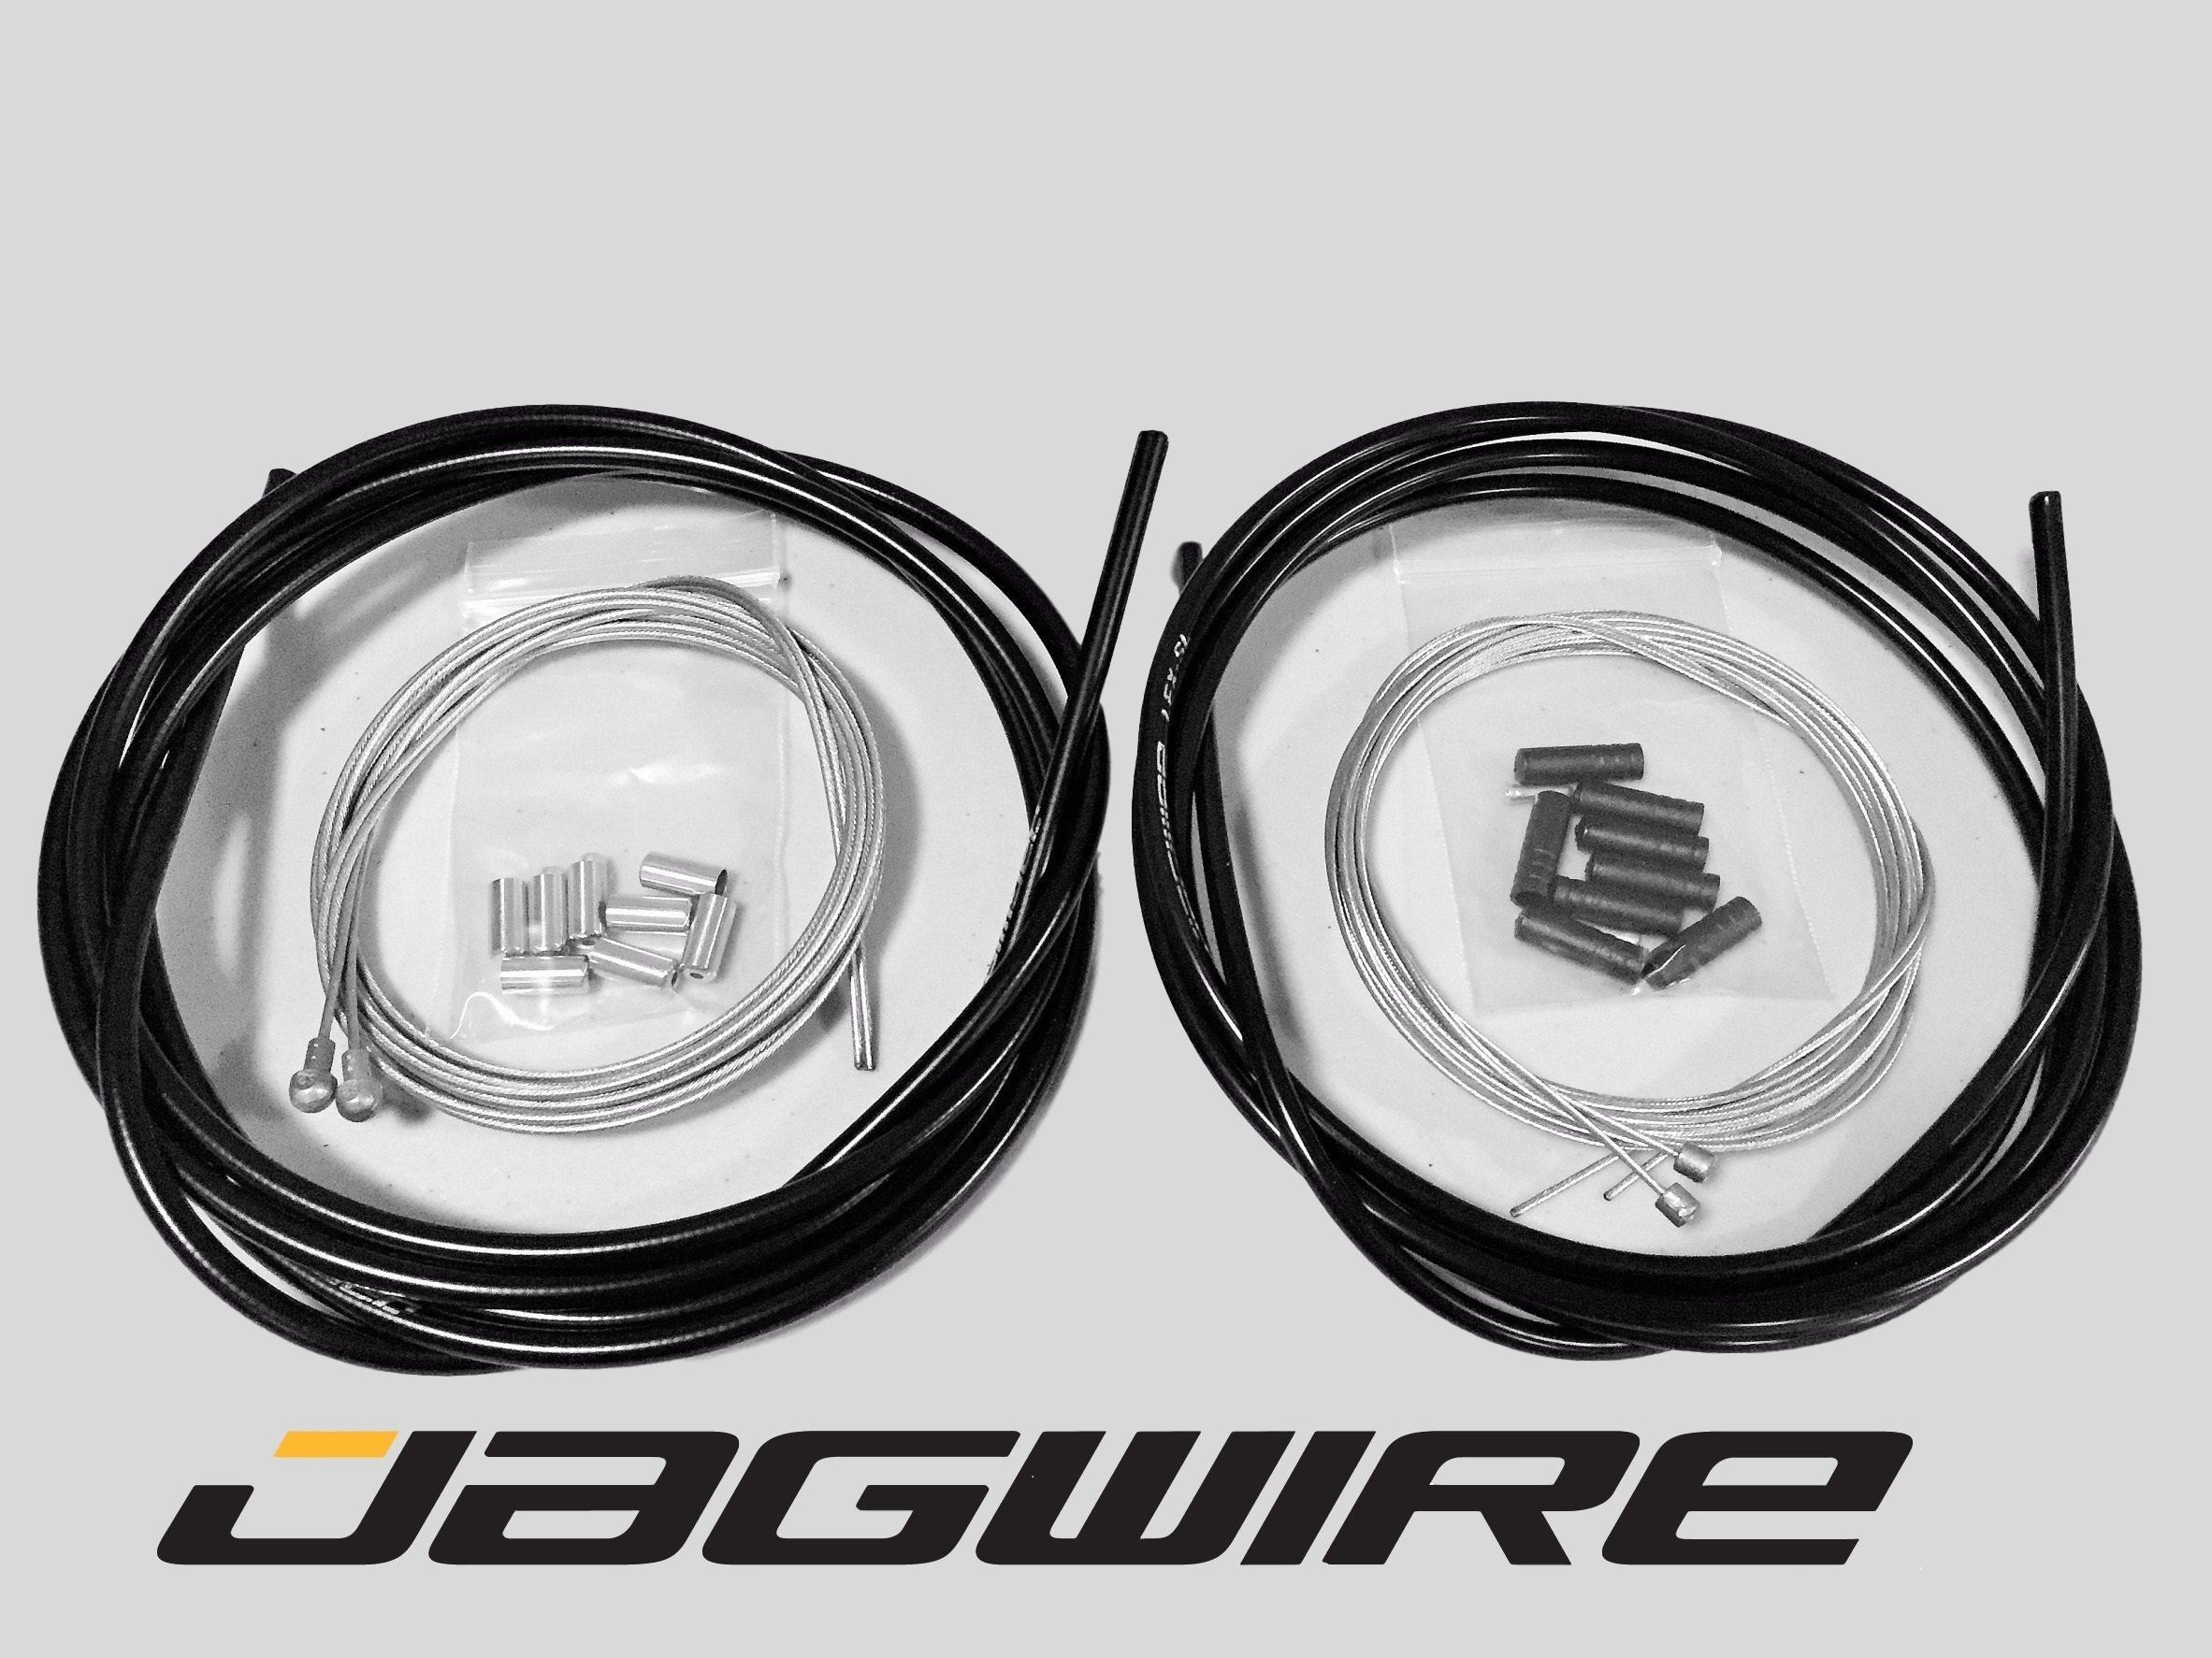 JAGWIRE ROAD SHOP KIT - Complete Brake & Shifter Cable and Housing Kit- Black - SRAM/Shimano by Jagwire